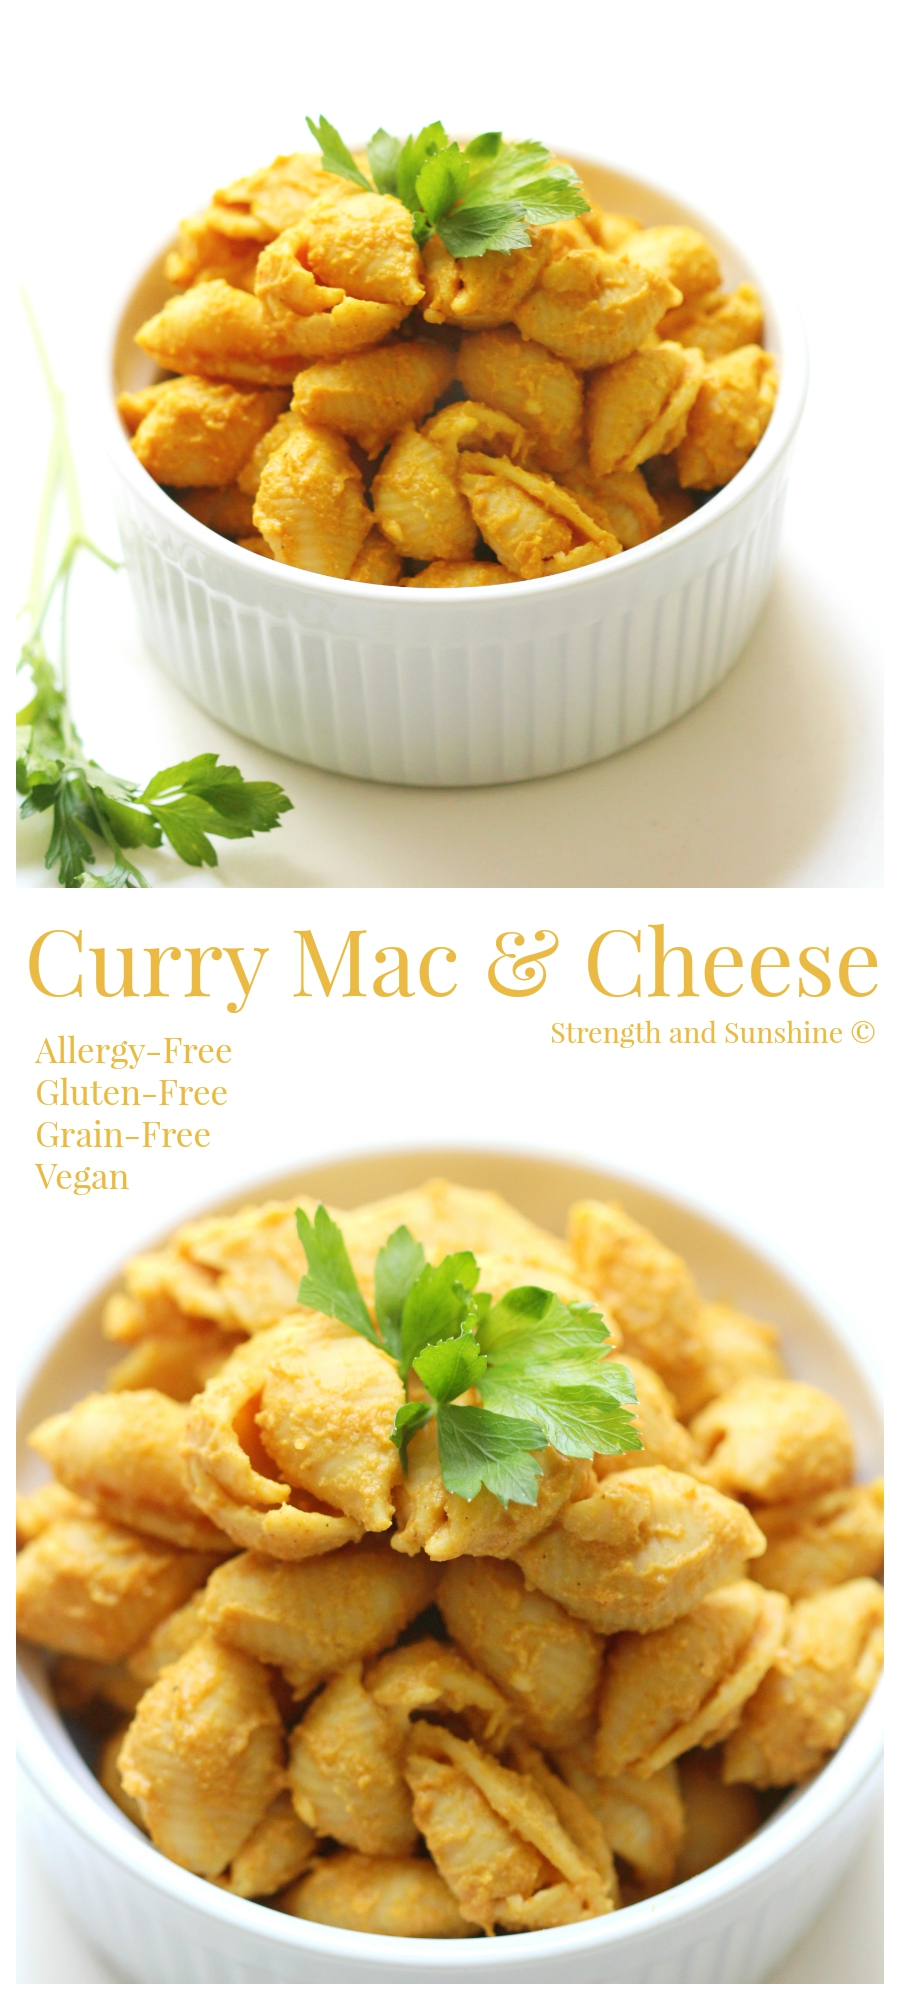 Curry Mac & Cheese | Strength and Sunshine @RebeccaGF666 Just when you thought mac & cheese couldn't get any better. This curry mac & cheese will blow your mind and taste buds while still being 100% allergy-free, gluten-free, grain-free, and vegan. You'll have no idea that this comfort food recipe is healthy enough to go back for seconds!